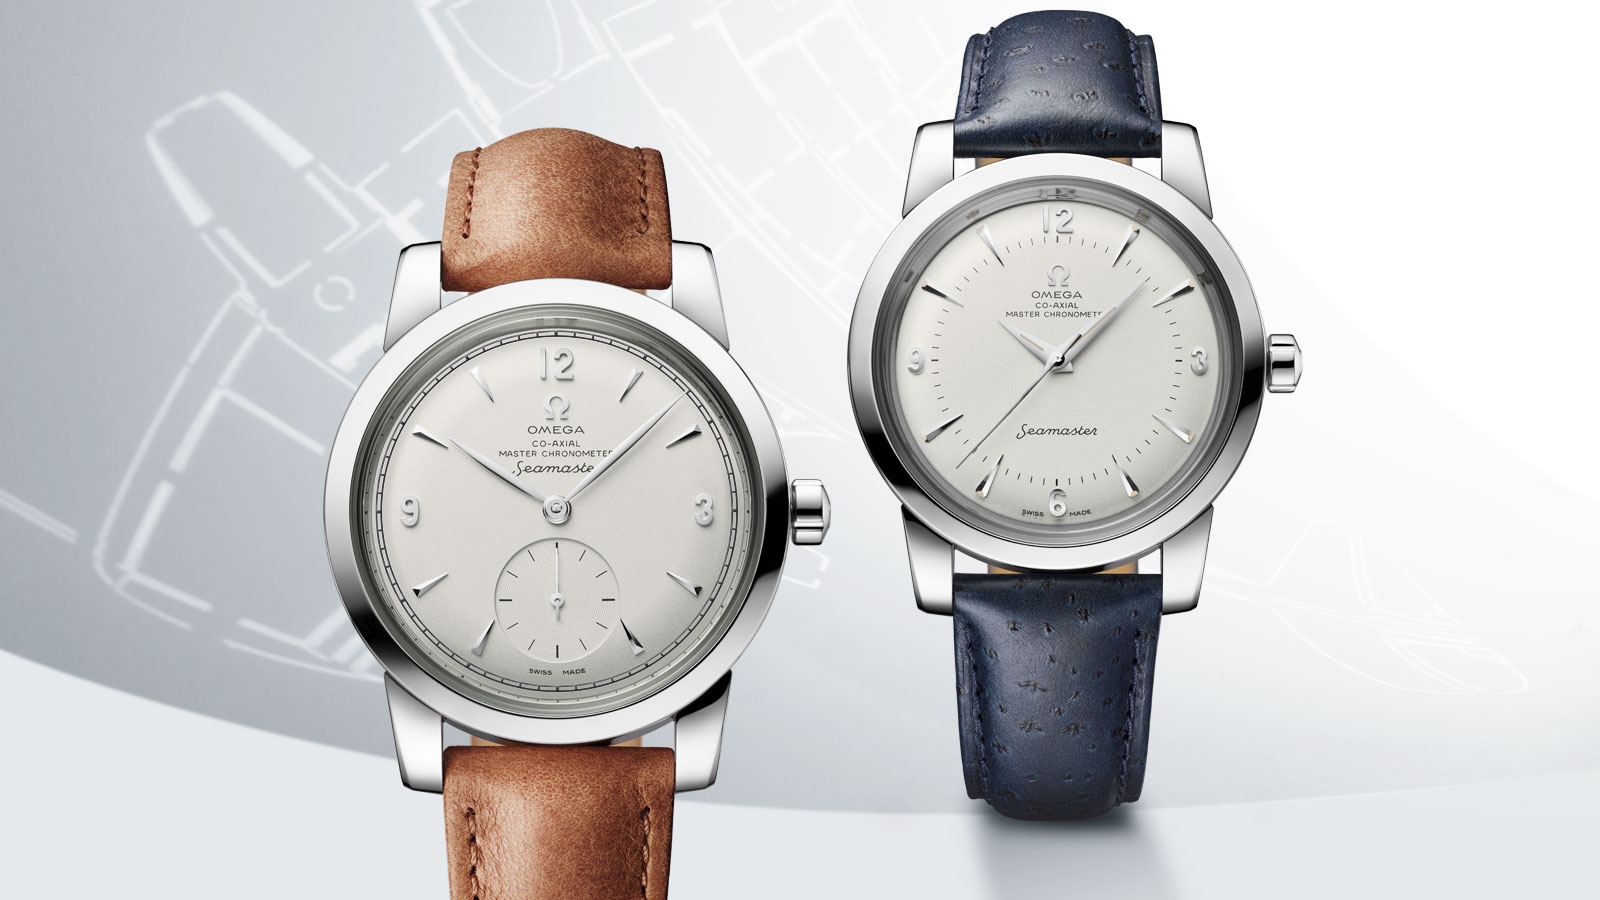 Seamaster 1948 Limited Editions - Baselworld 2018 - Watches - Single - 49466